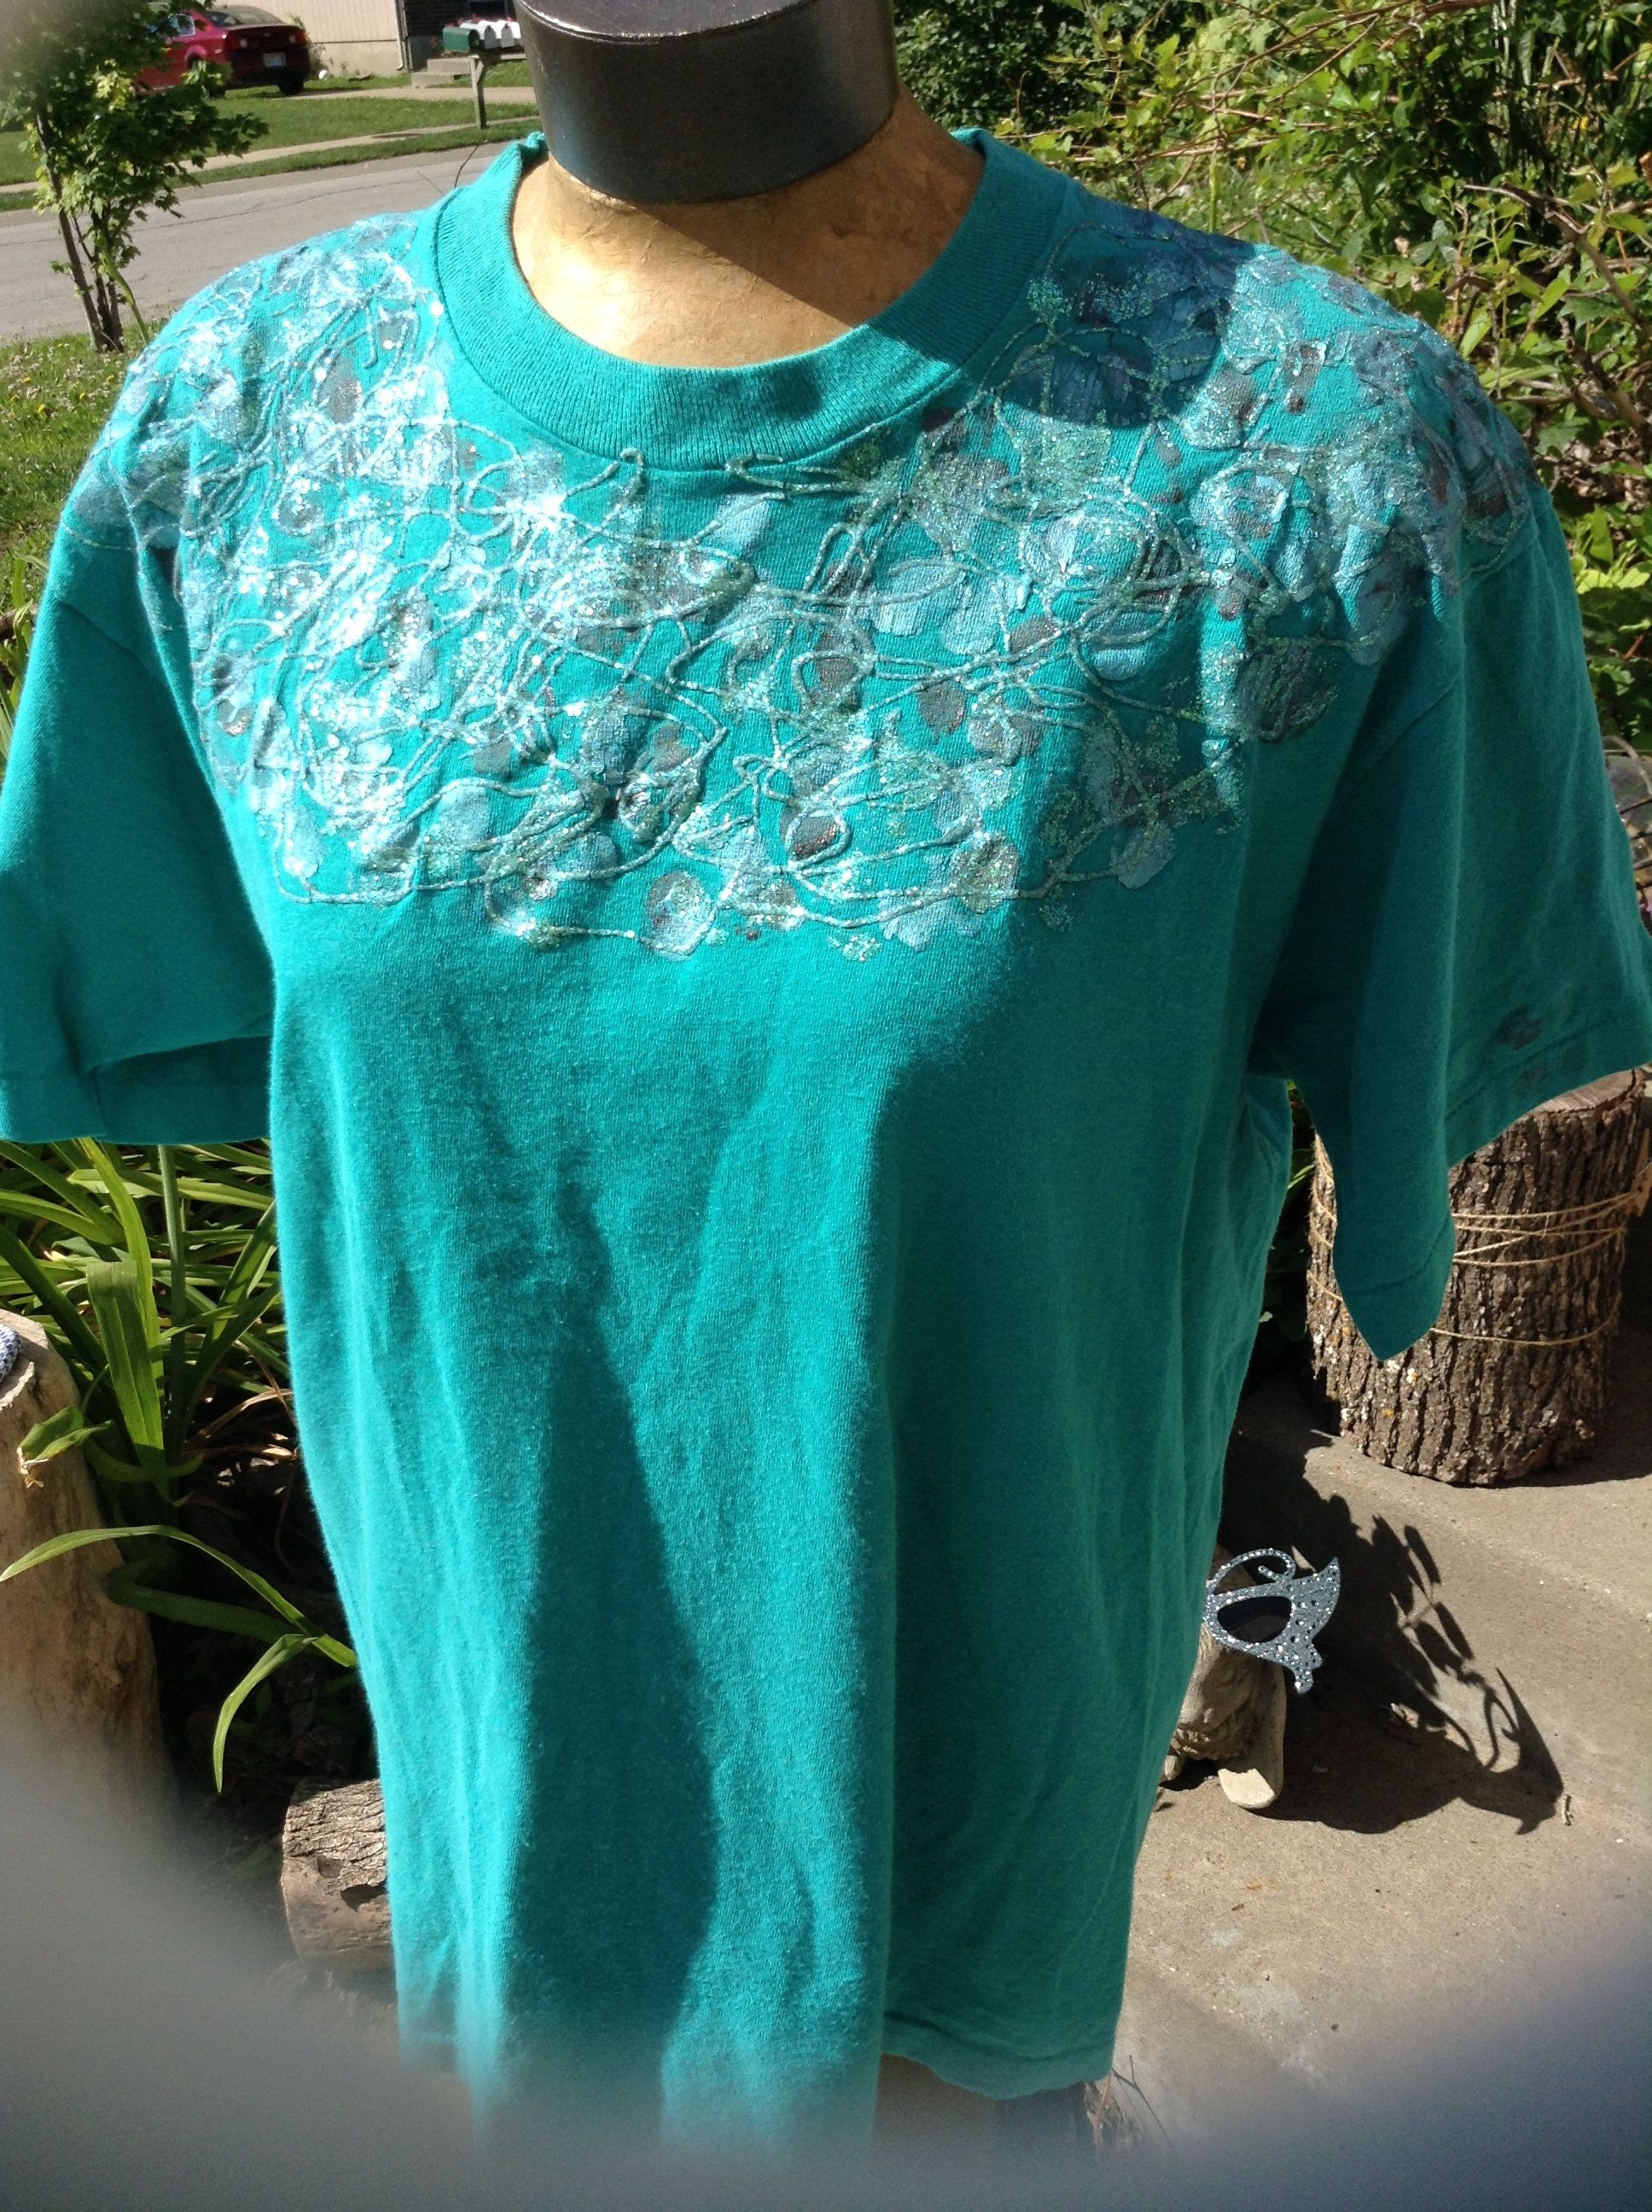 Puffy paint designs - Vintage 80s Kitschy Turquoise Tshirt With Puffy Paint Designs And Glitter One Size Fits All Free